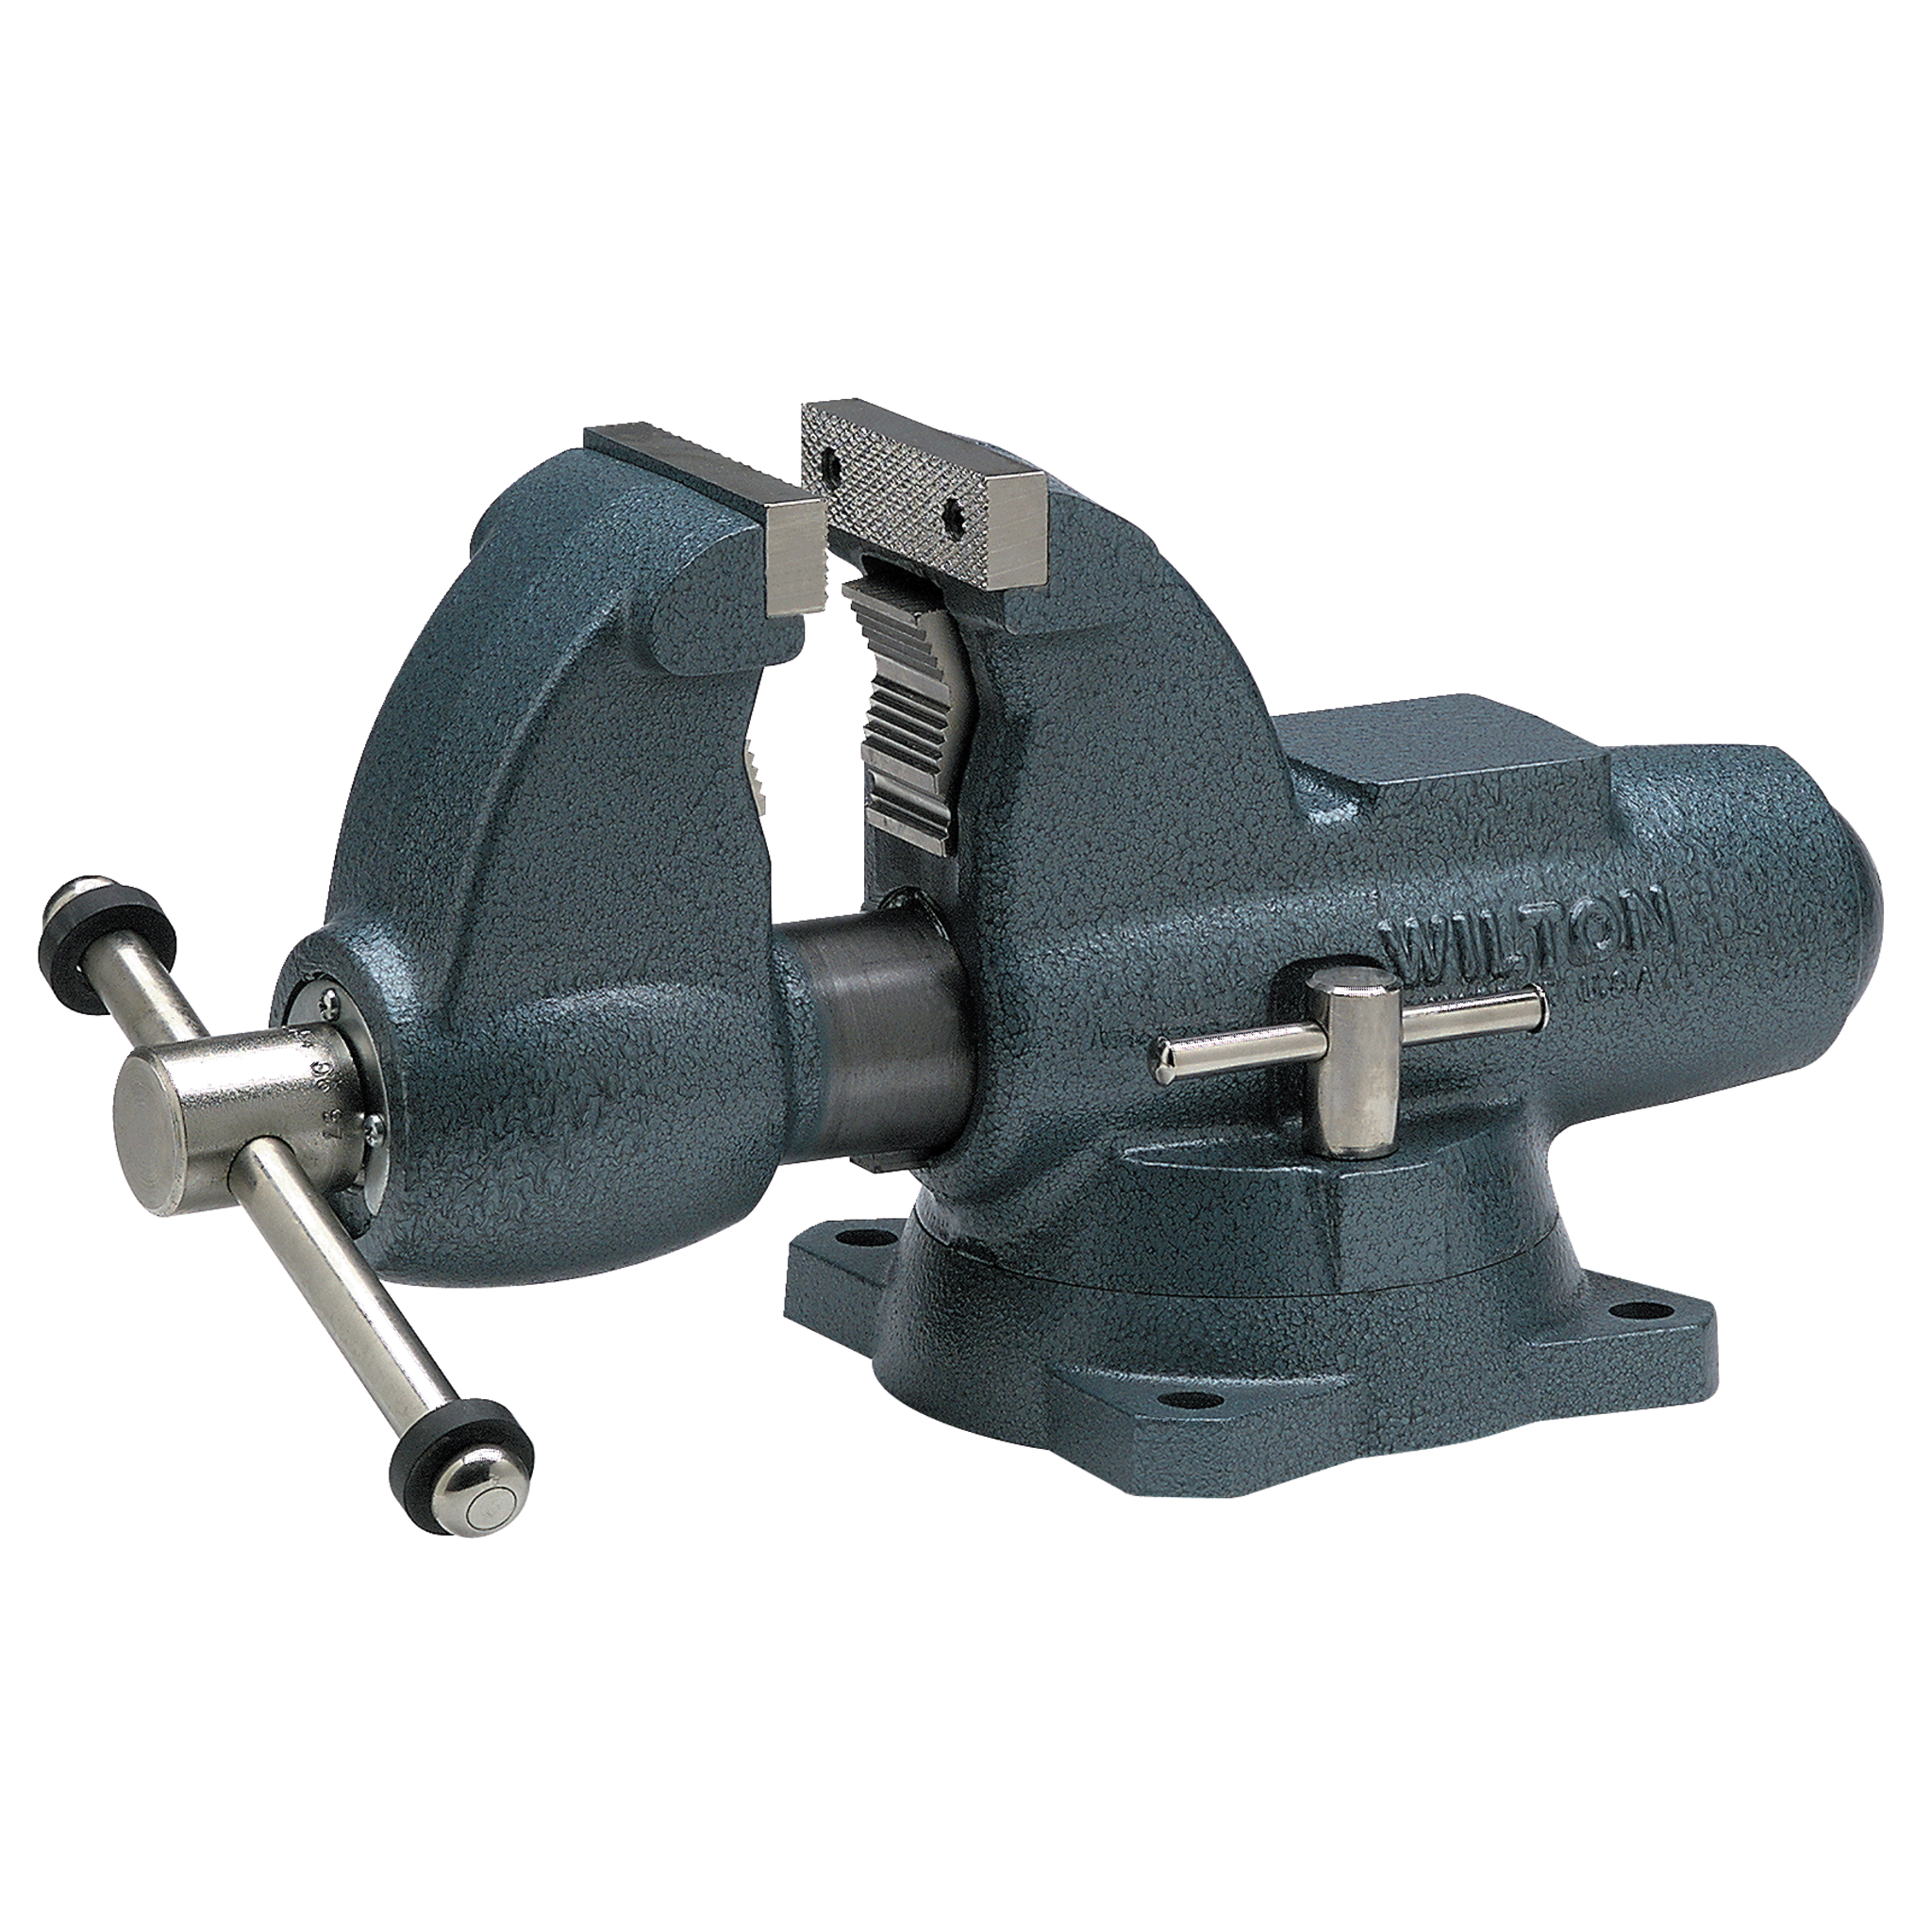 Wilton Combination Pipe And Bench 4 1 2 Jaw Round Channel